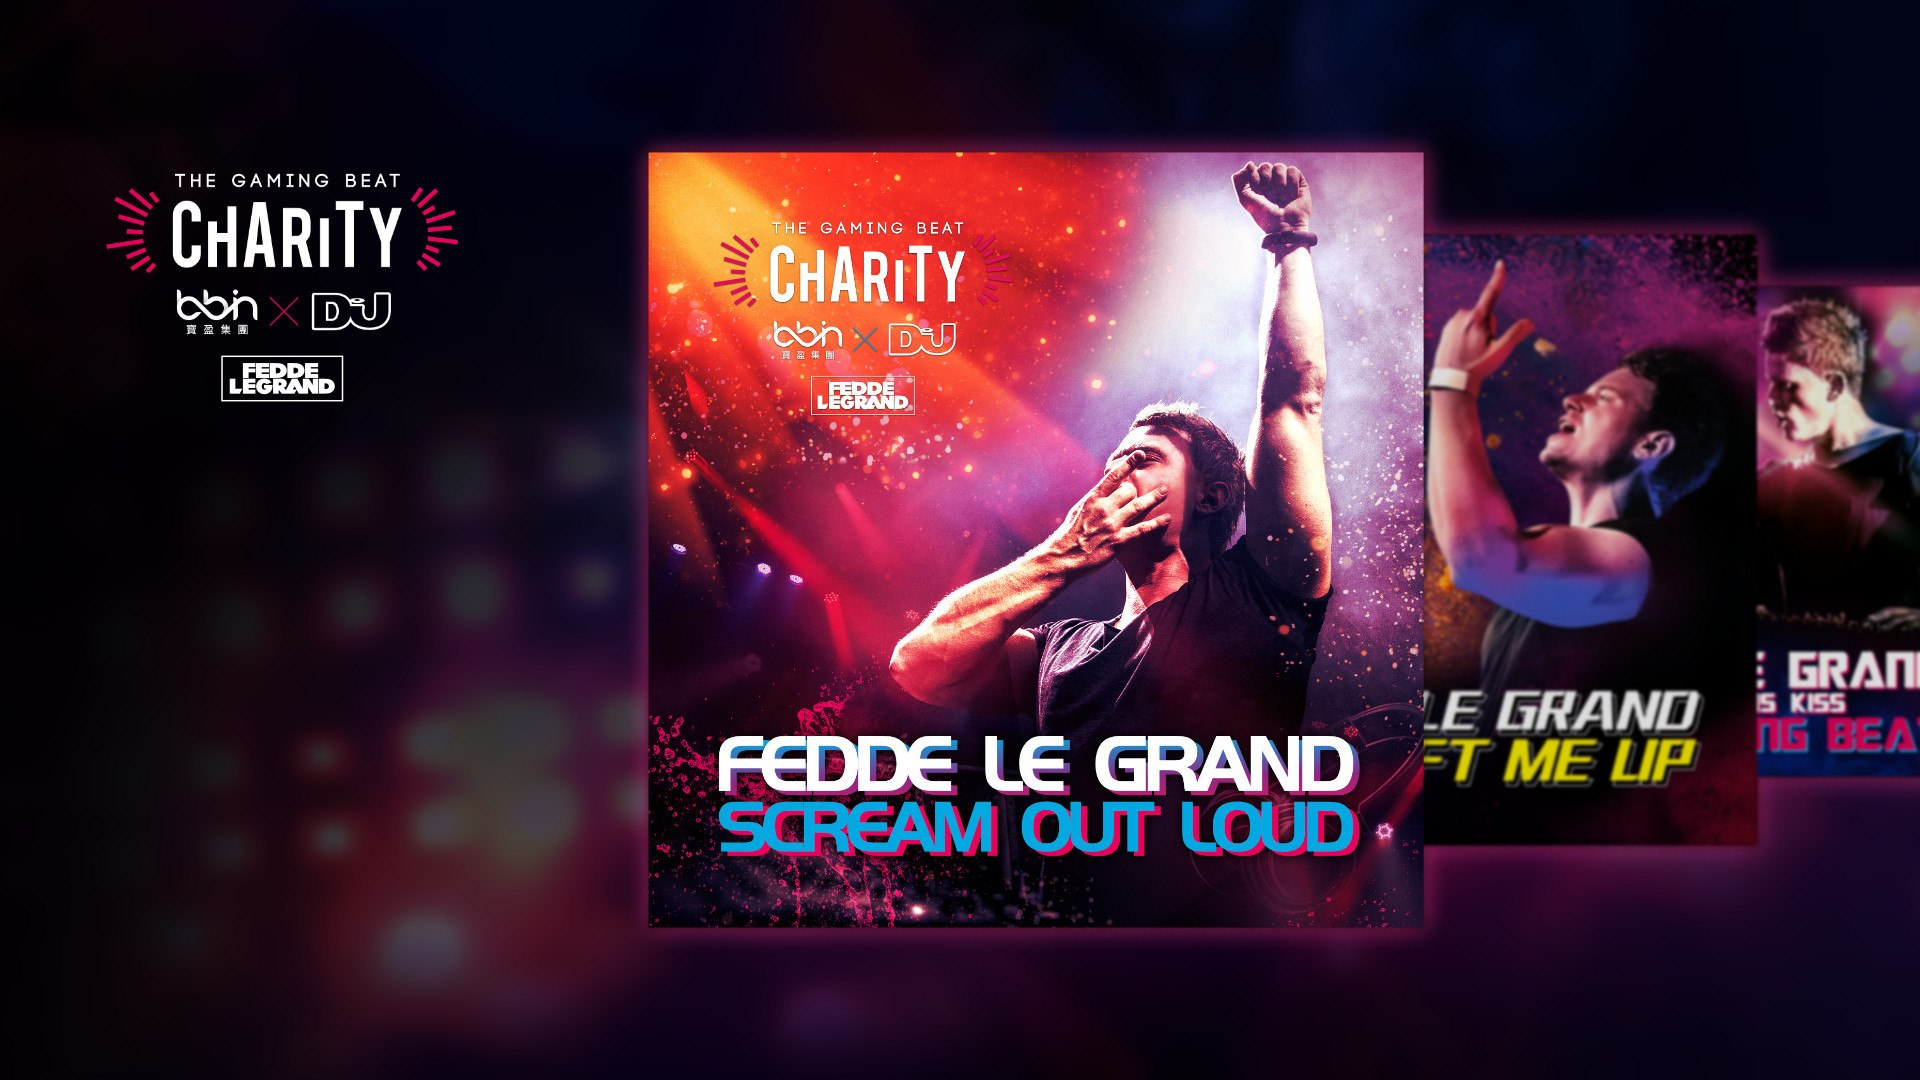 ALL THREE RECORDS OF THE GAMING BEAT CHARITY ARE NOW AVAILABLE FOR FREE DOWNLOAD